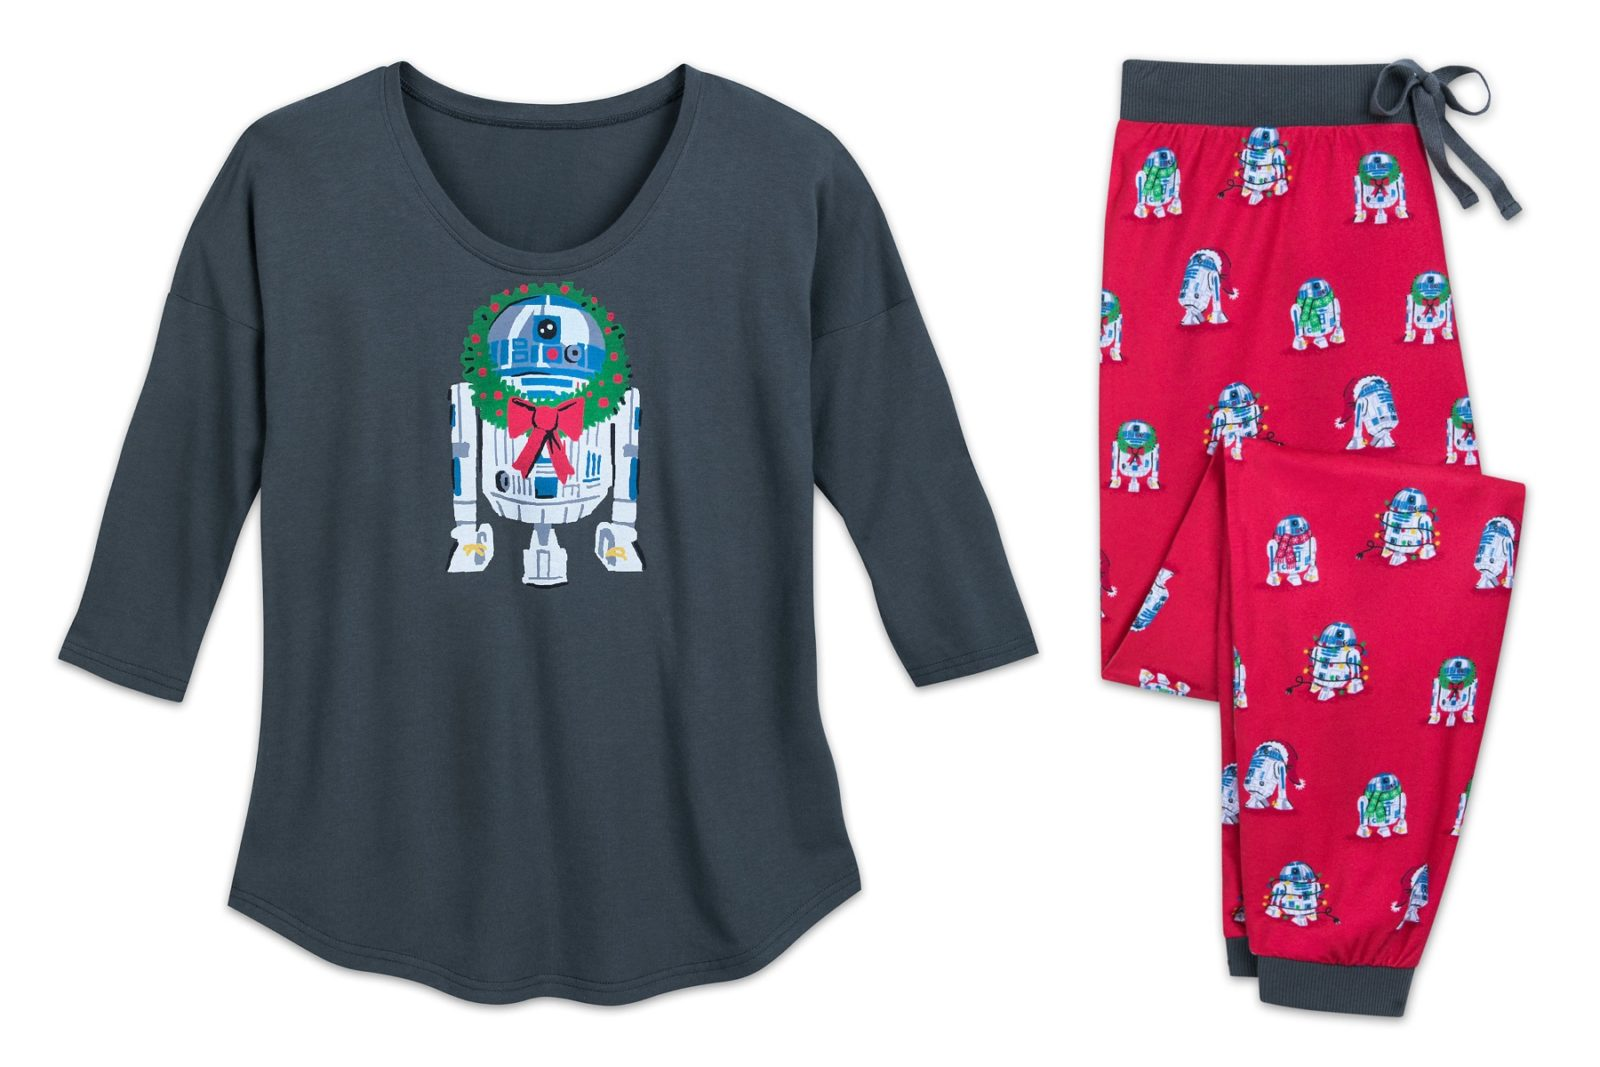 Women's Munki Munki x Star Wars Sleepwear